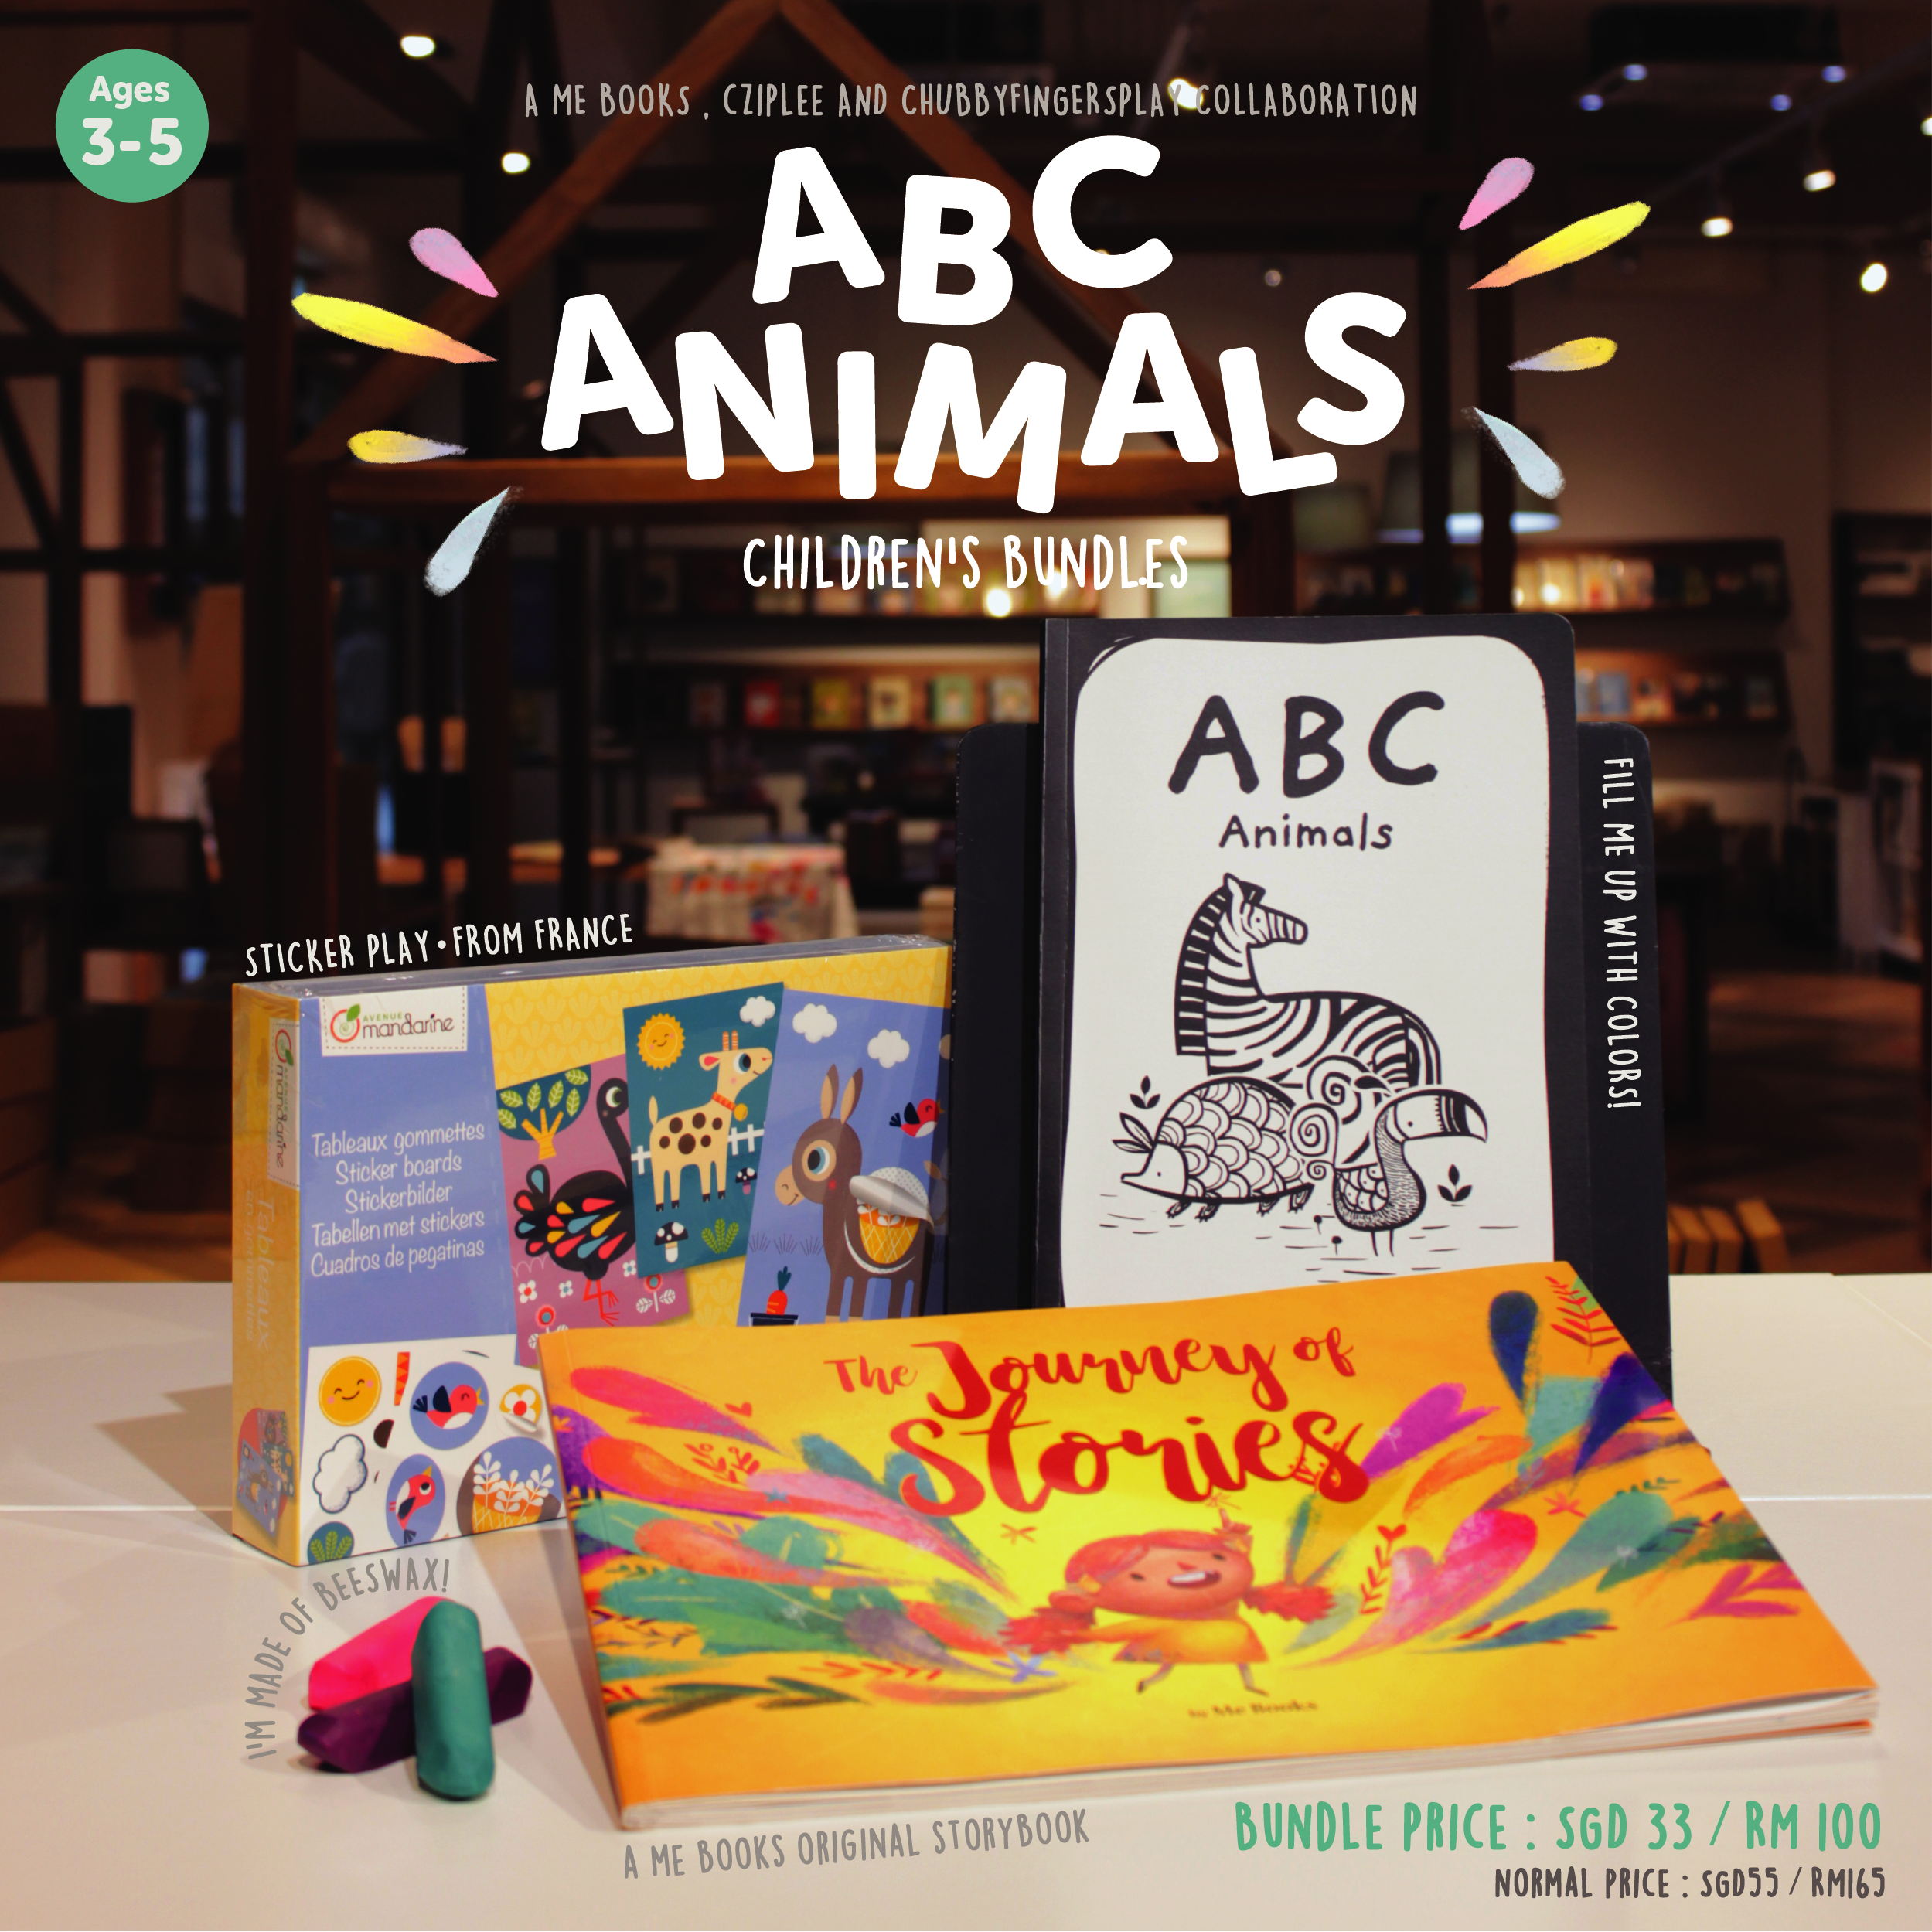 ABC Animal Children's Bundle